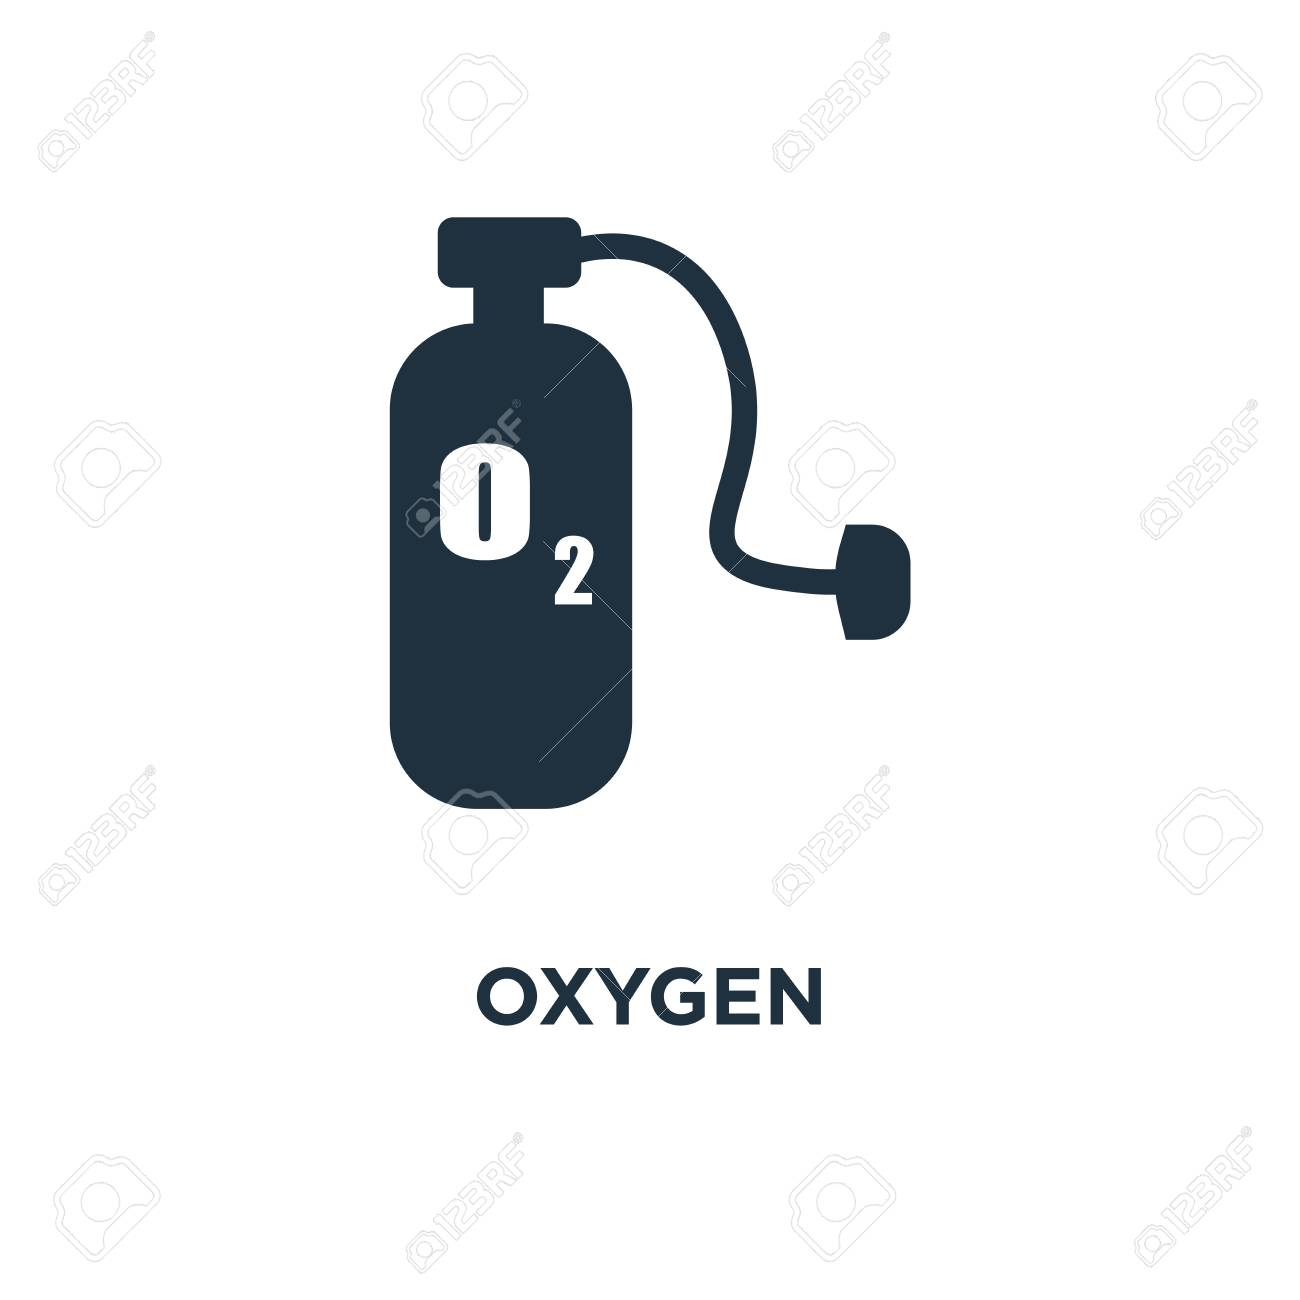 Oxygen icon. Black filled vector illustration. Oxygen symbol on white background. Can be used in web and mobile. - 112279578